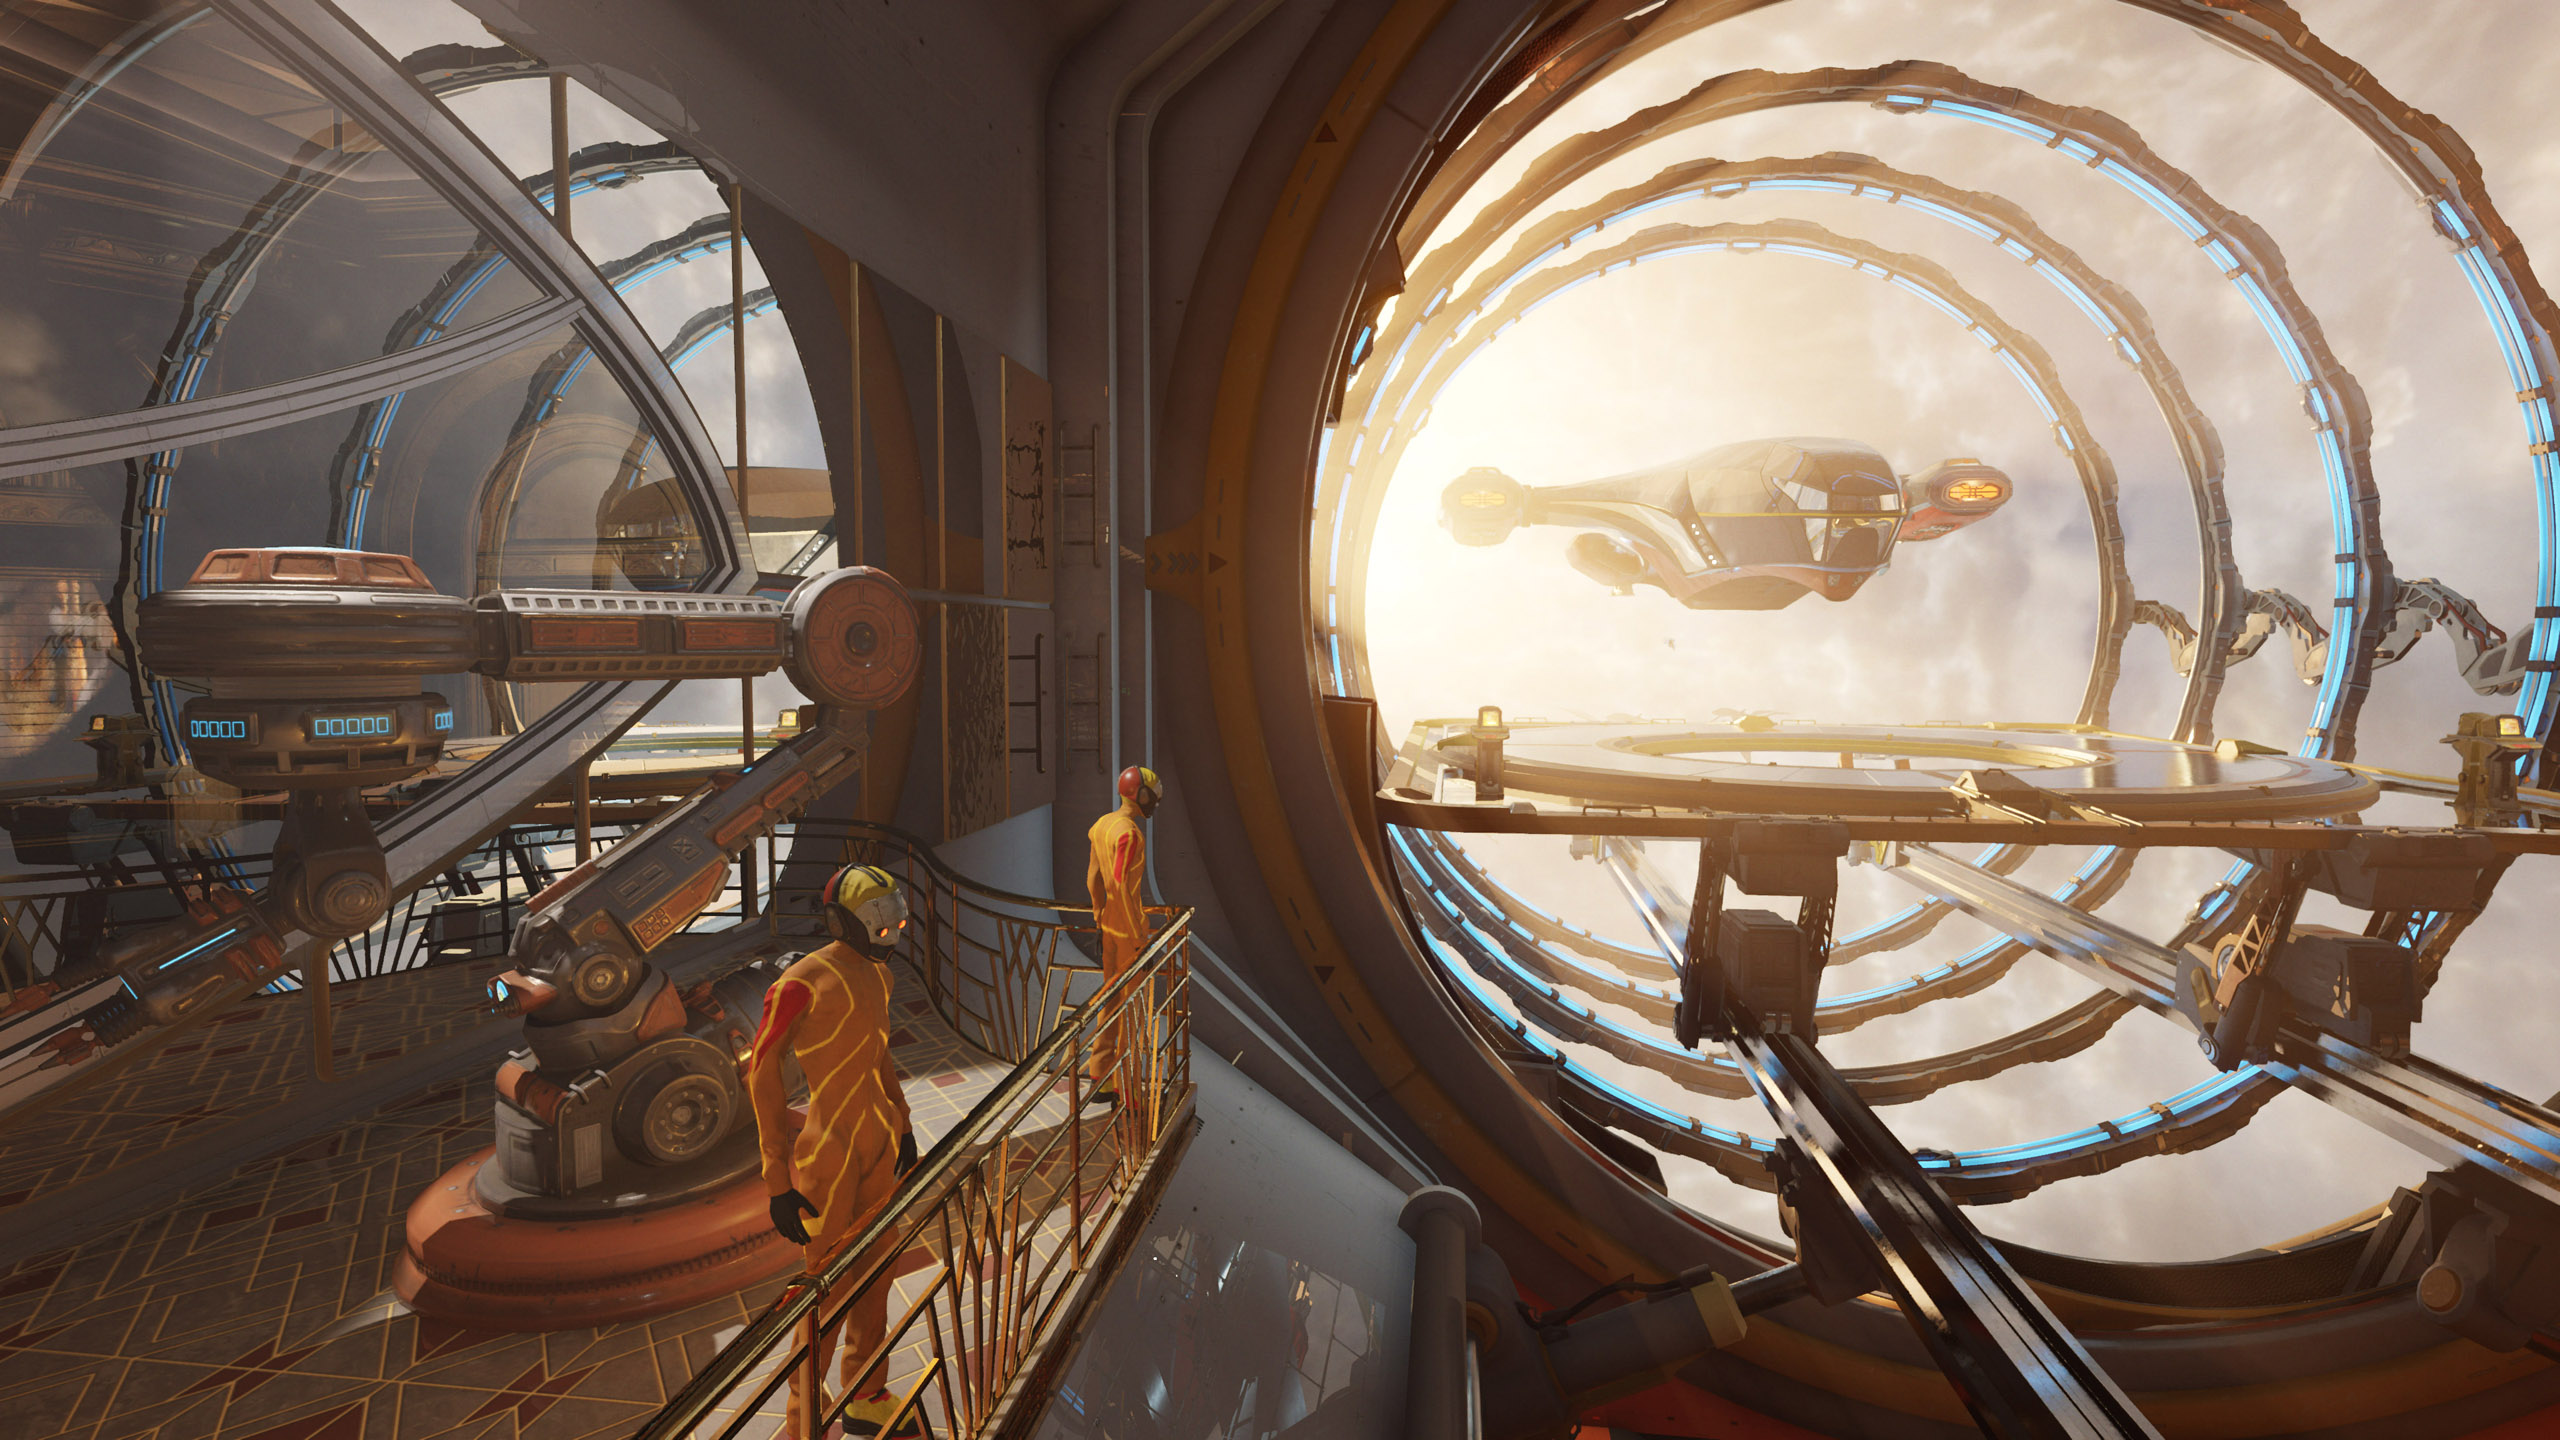 3DMark Port Royal ray tracing benchmark screenshot